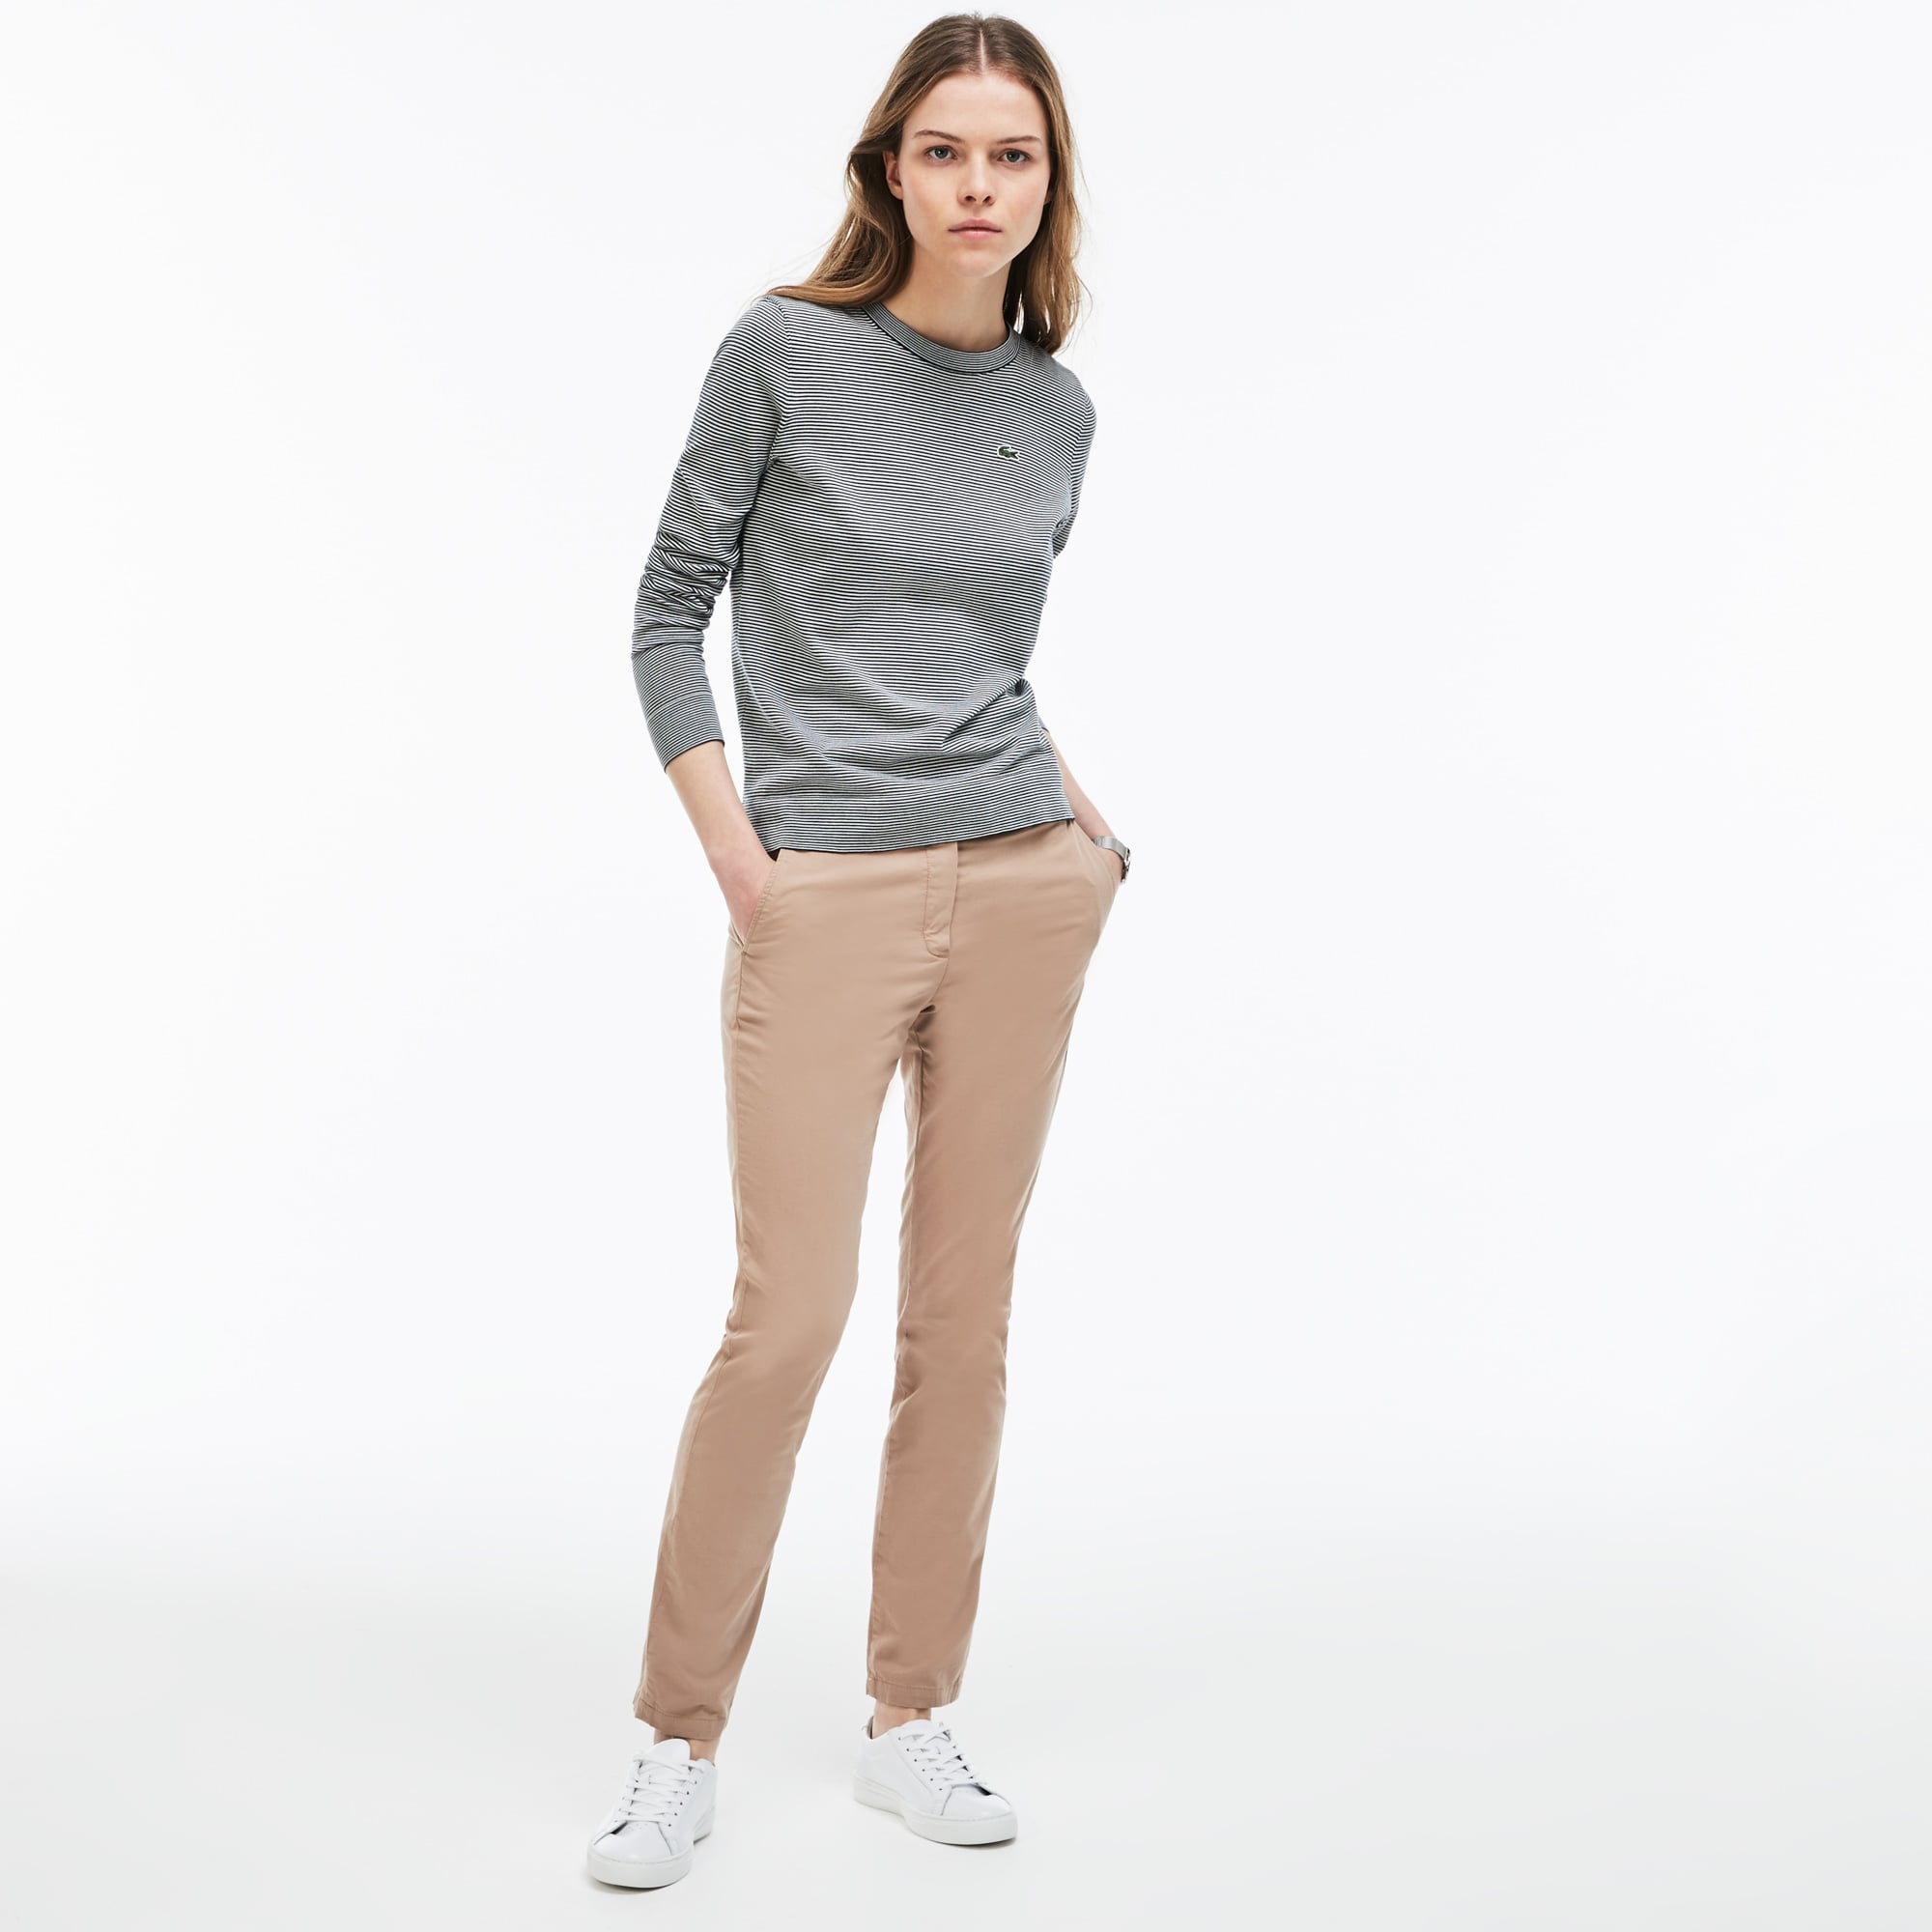 Pantaloni chino regular fit con pince in gabardine stretch tinta unita